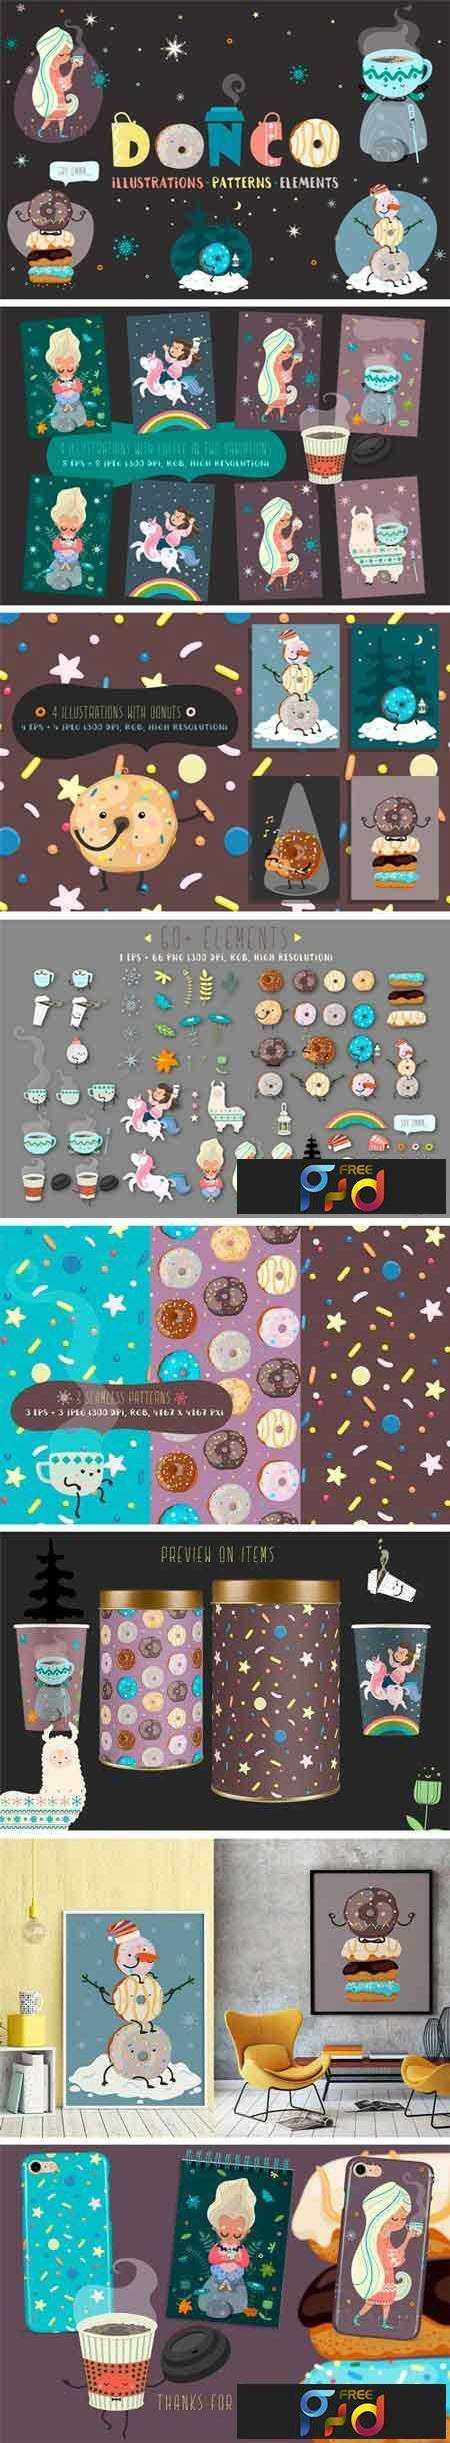 1708148 DONCO (Coffee and Donut) 2054018 1